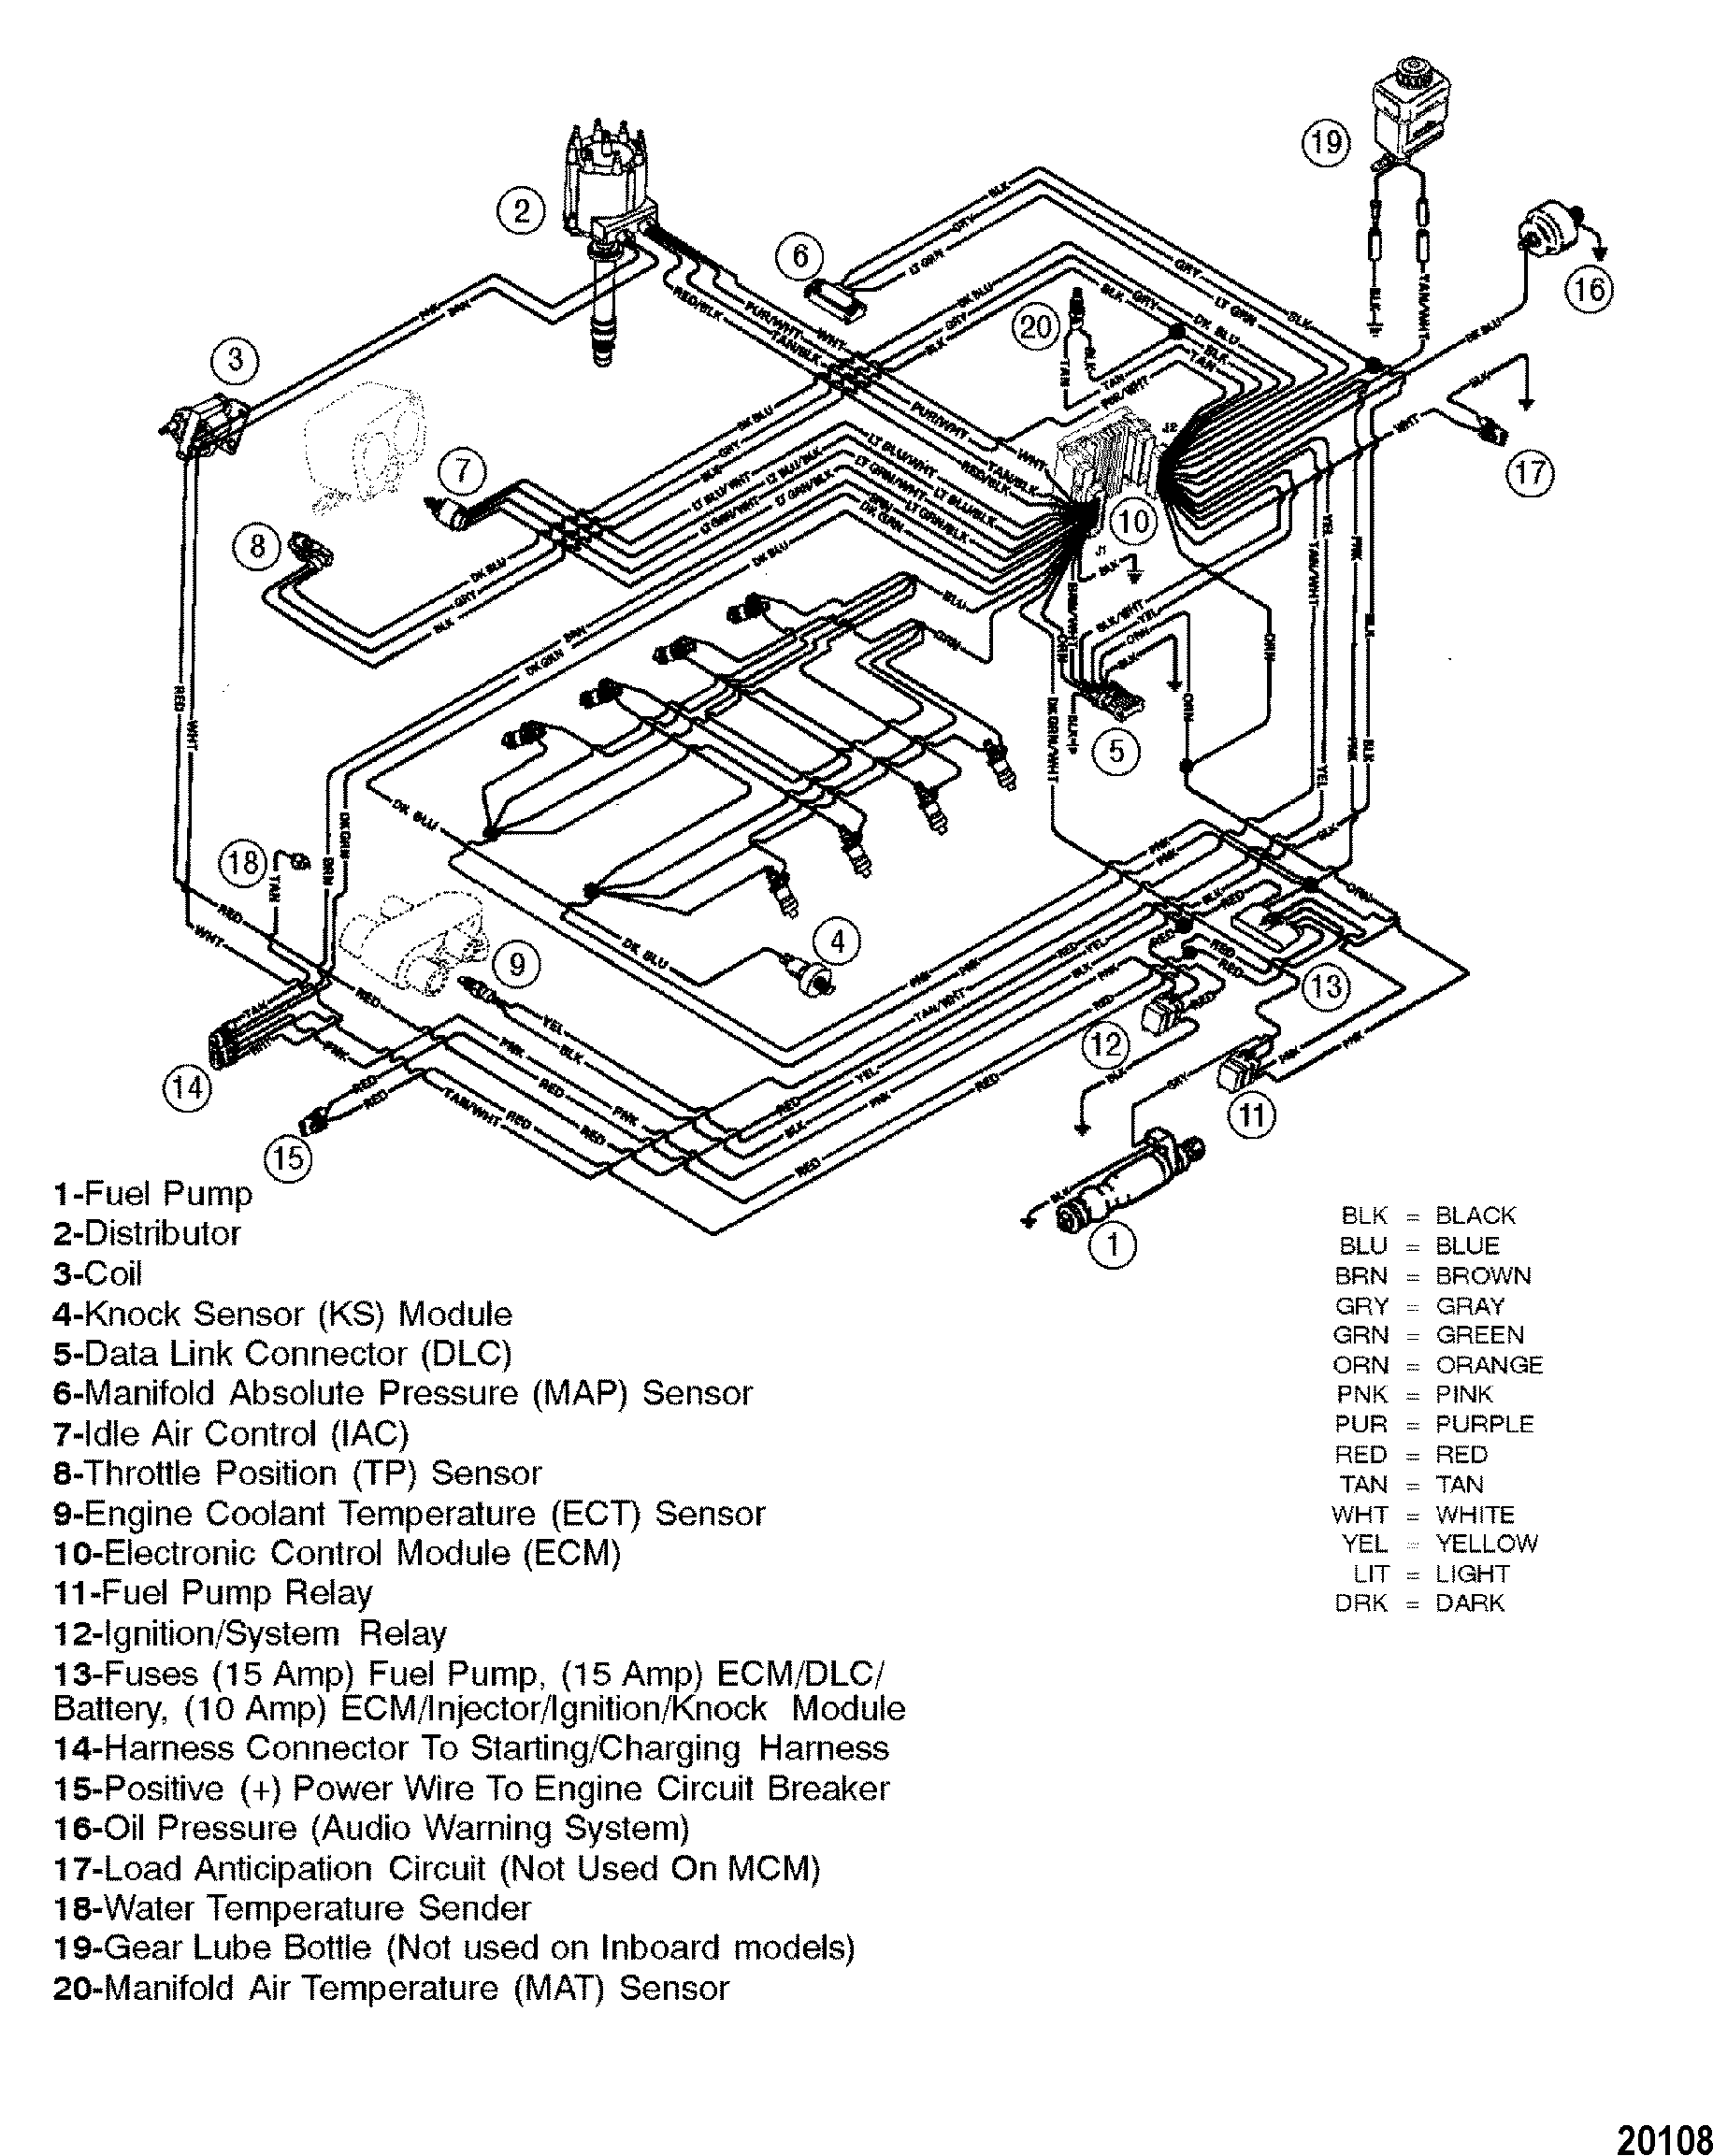 20108 cp performance wiring harness (efi) corsa marine exhaust wiring diagram at crackthecode.co